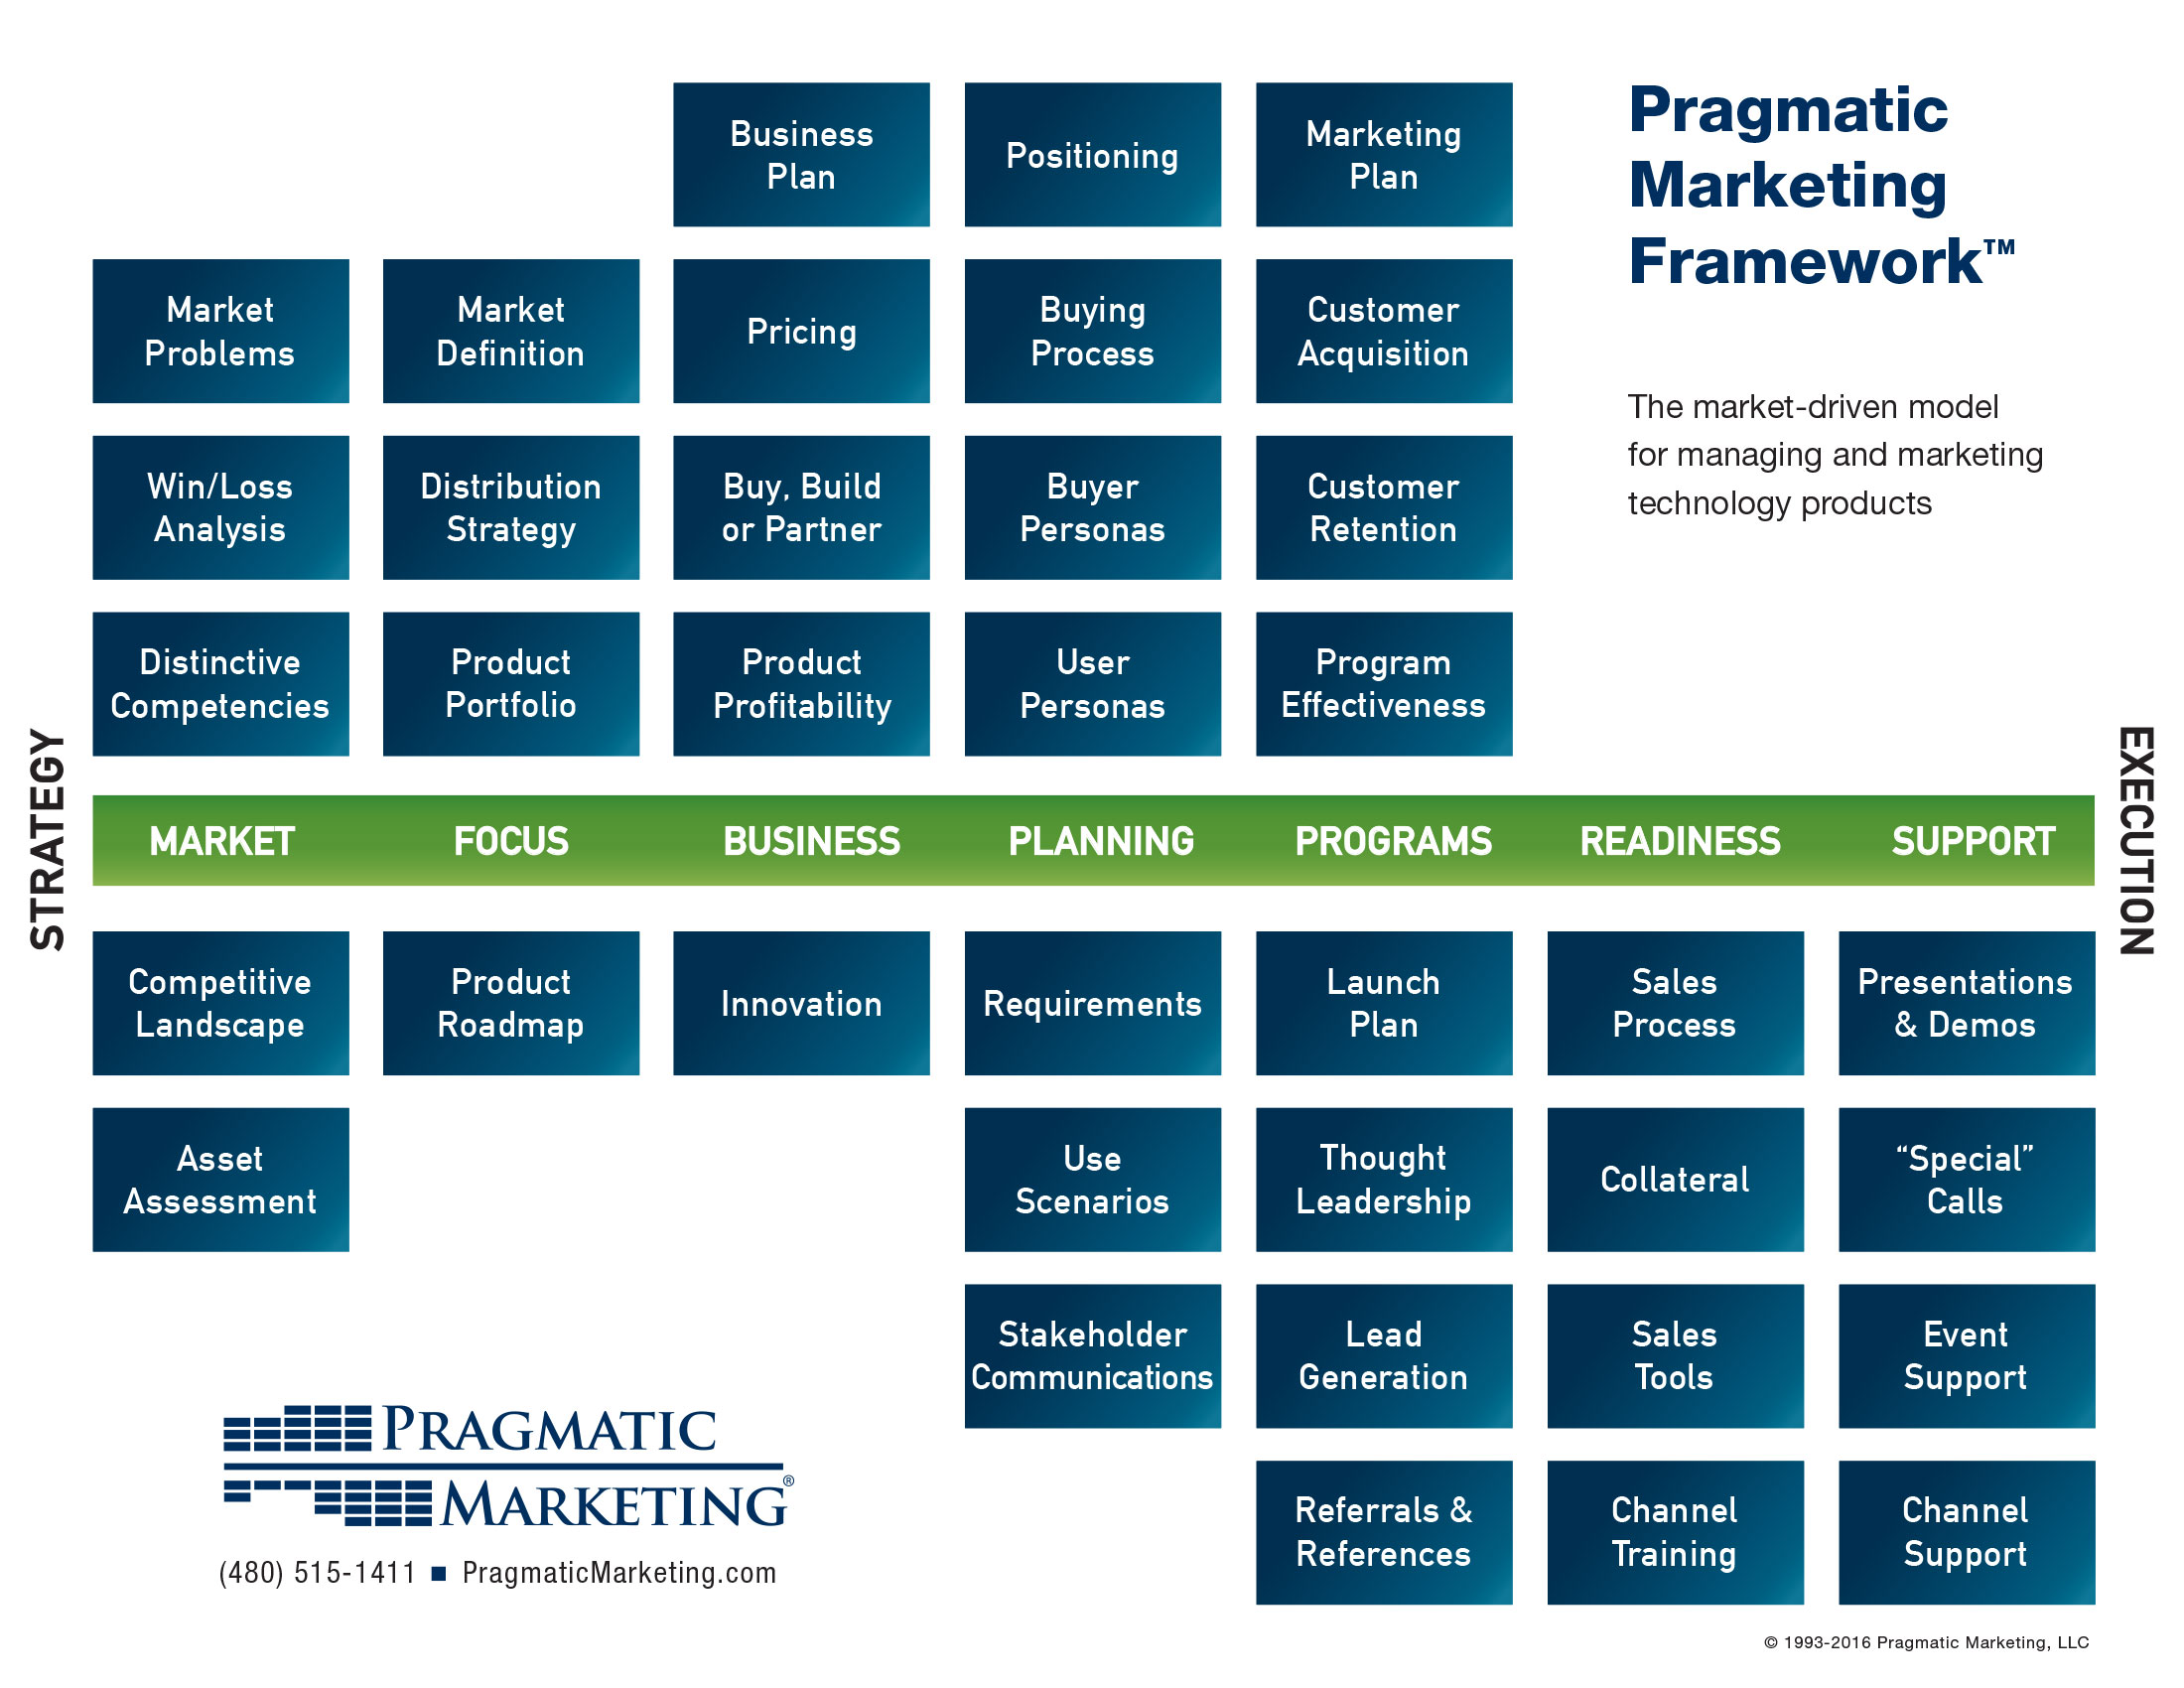 The Pragmatic Marketing Framework - Business plan framework template